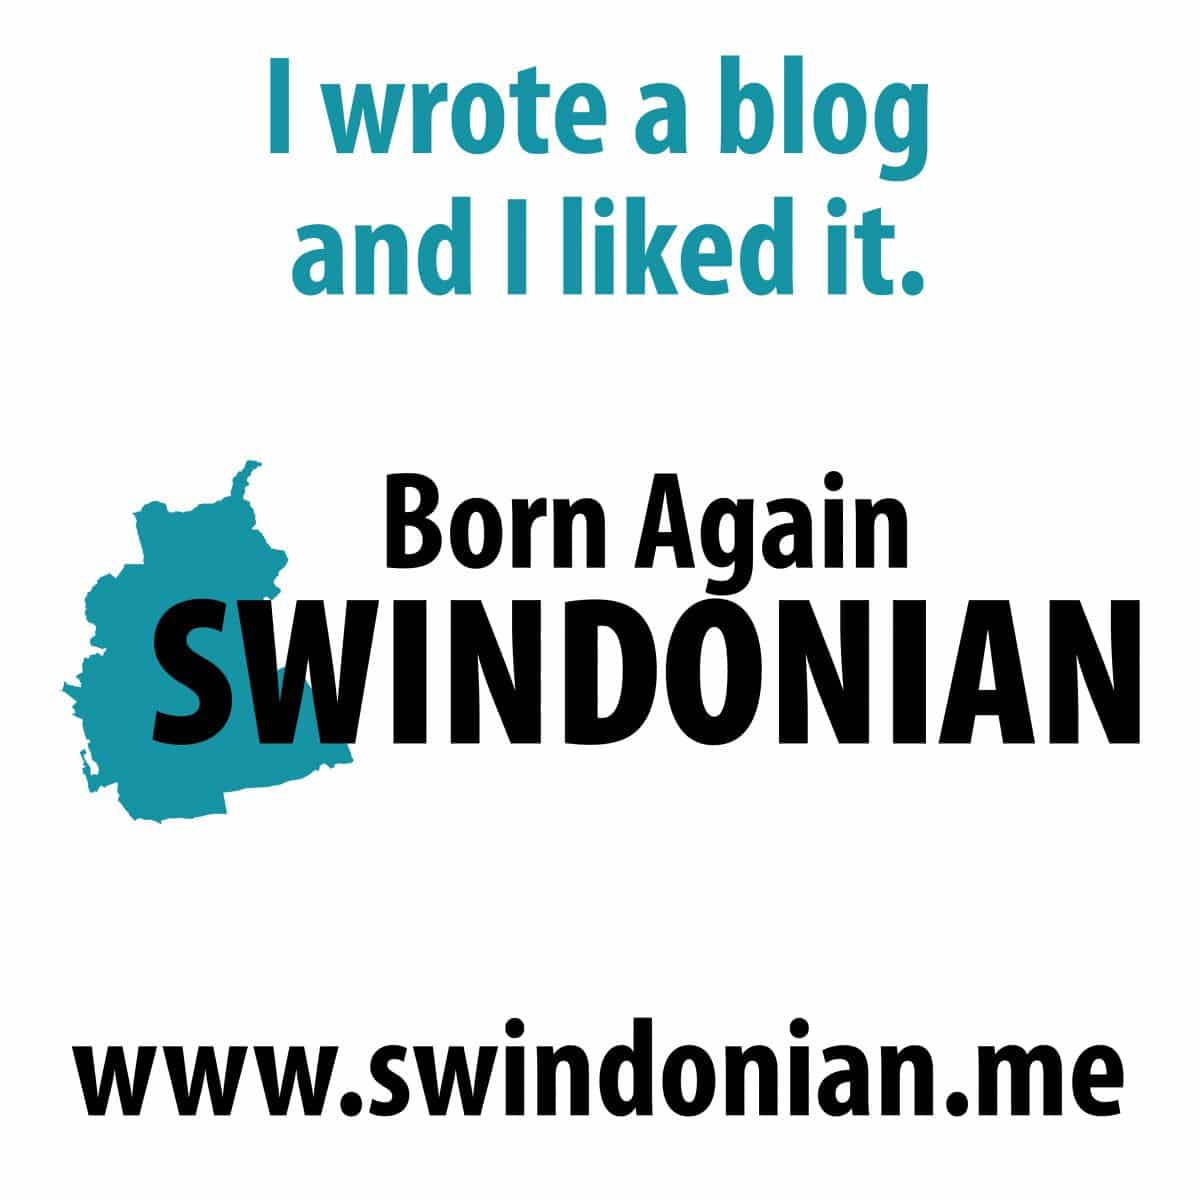 An open letter to Swindonians